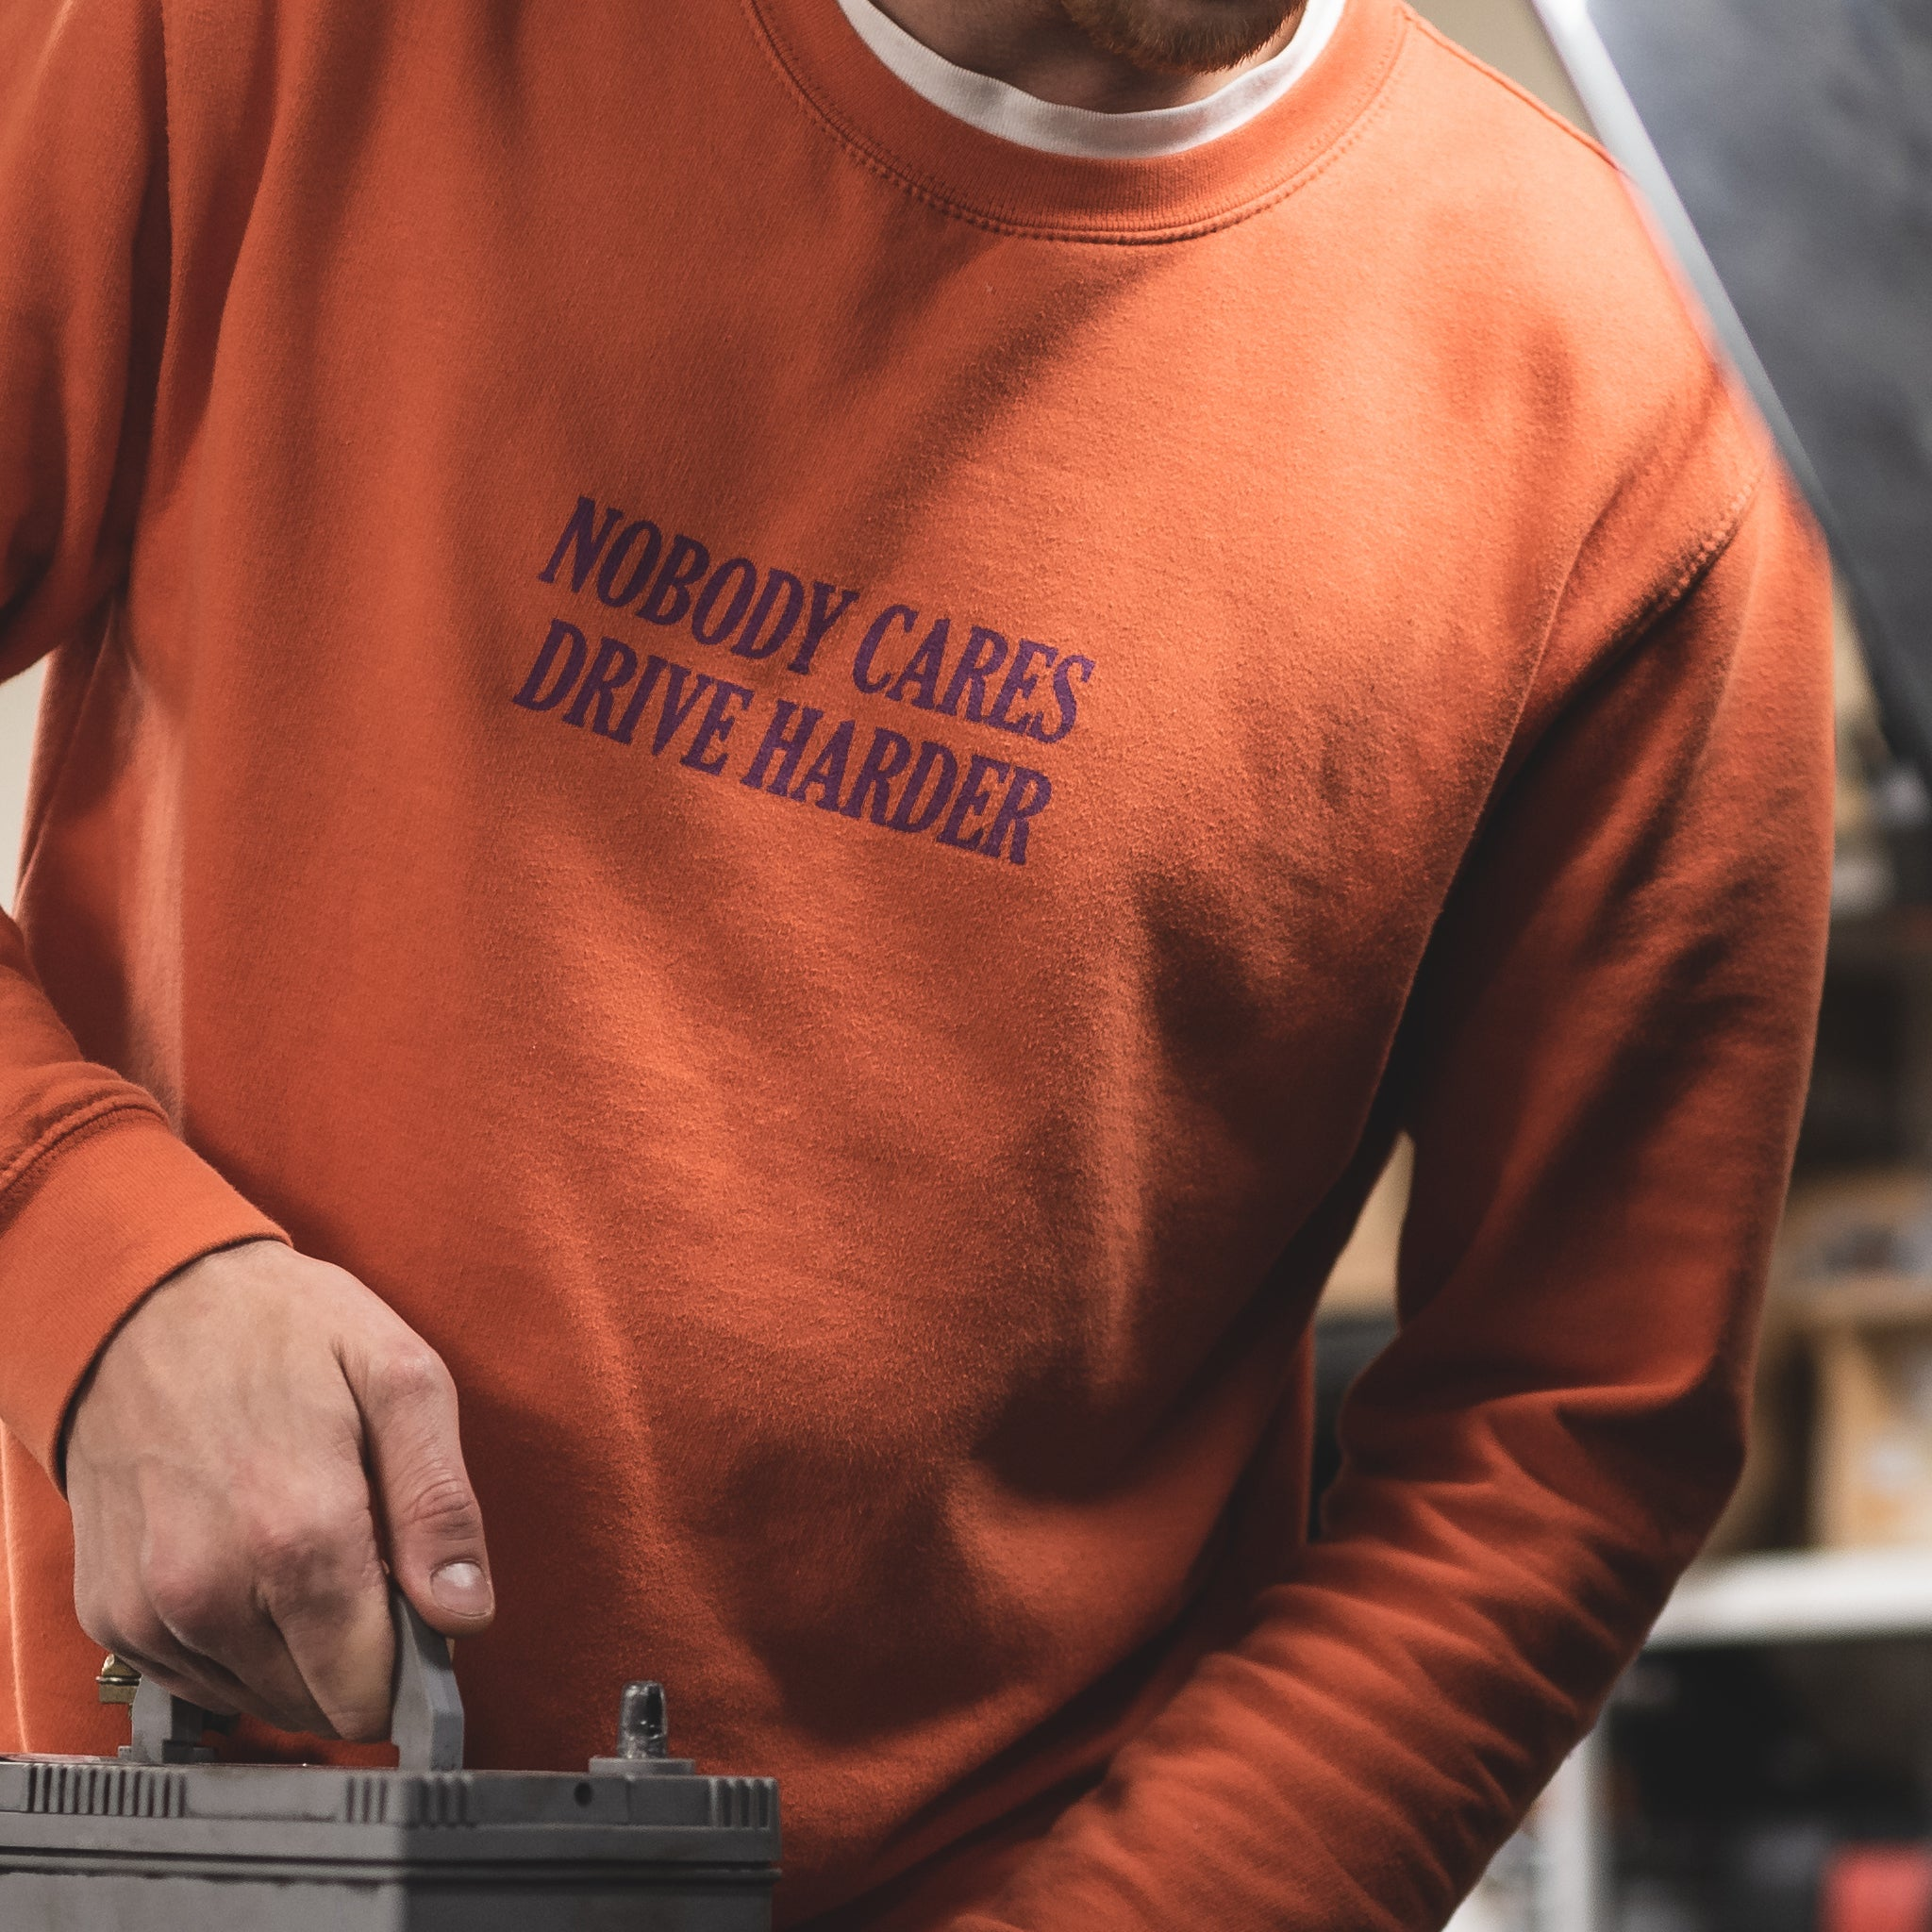 NOBODY CARES, DRIVE HARDER Sweatshirt